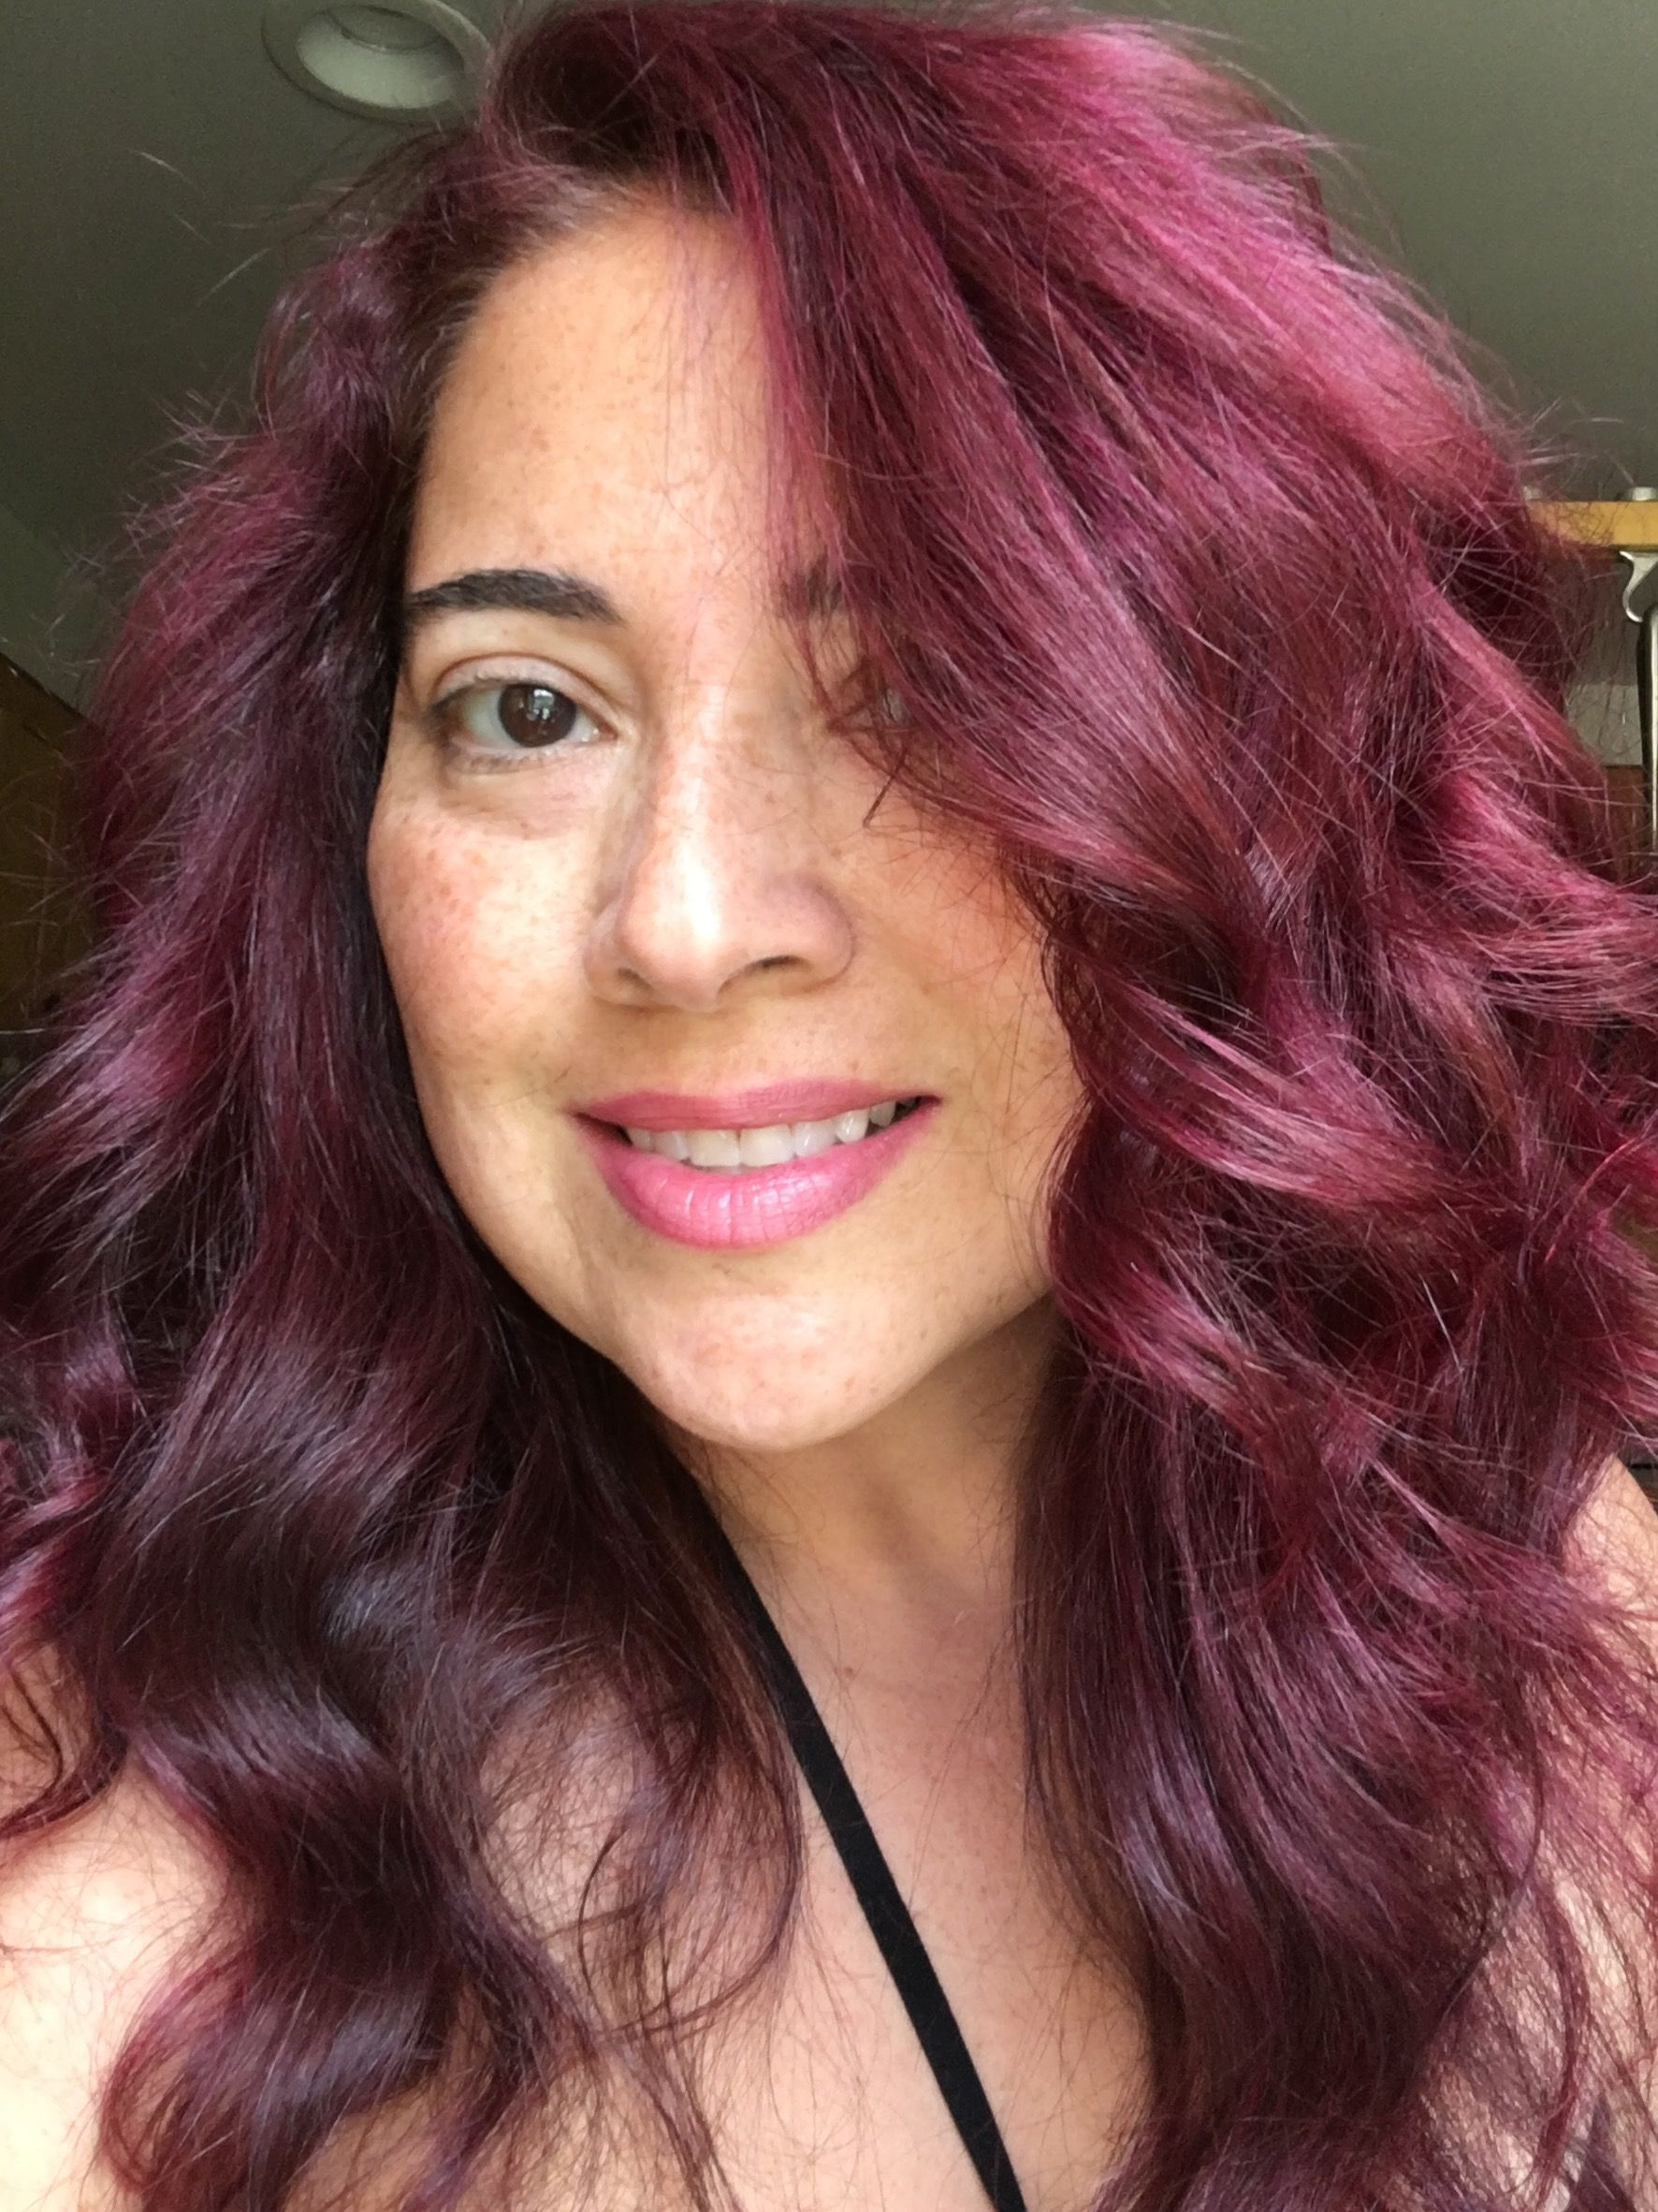 Flamingo Pink Jerome Russell Punky Color Over Hair Dyed Light Brown Summer 2016 Flamingo Pink Hair Punky Color Dyed Hair